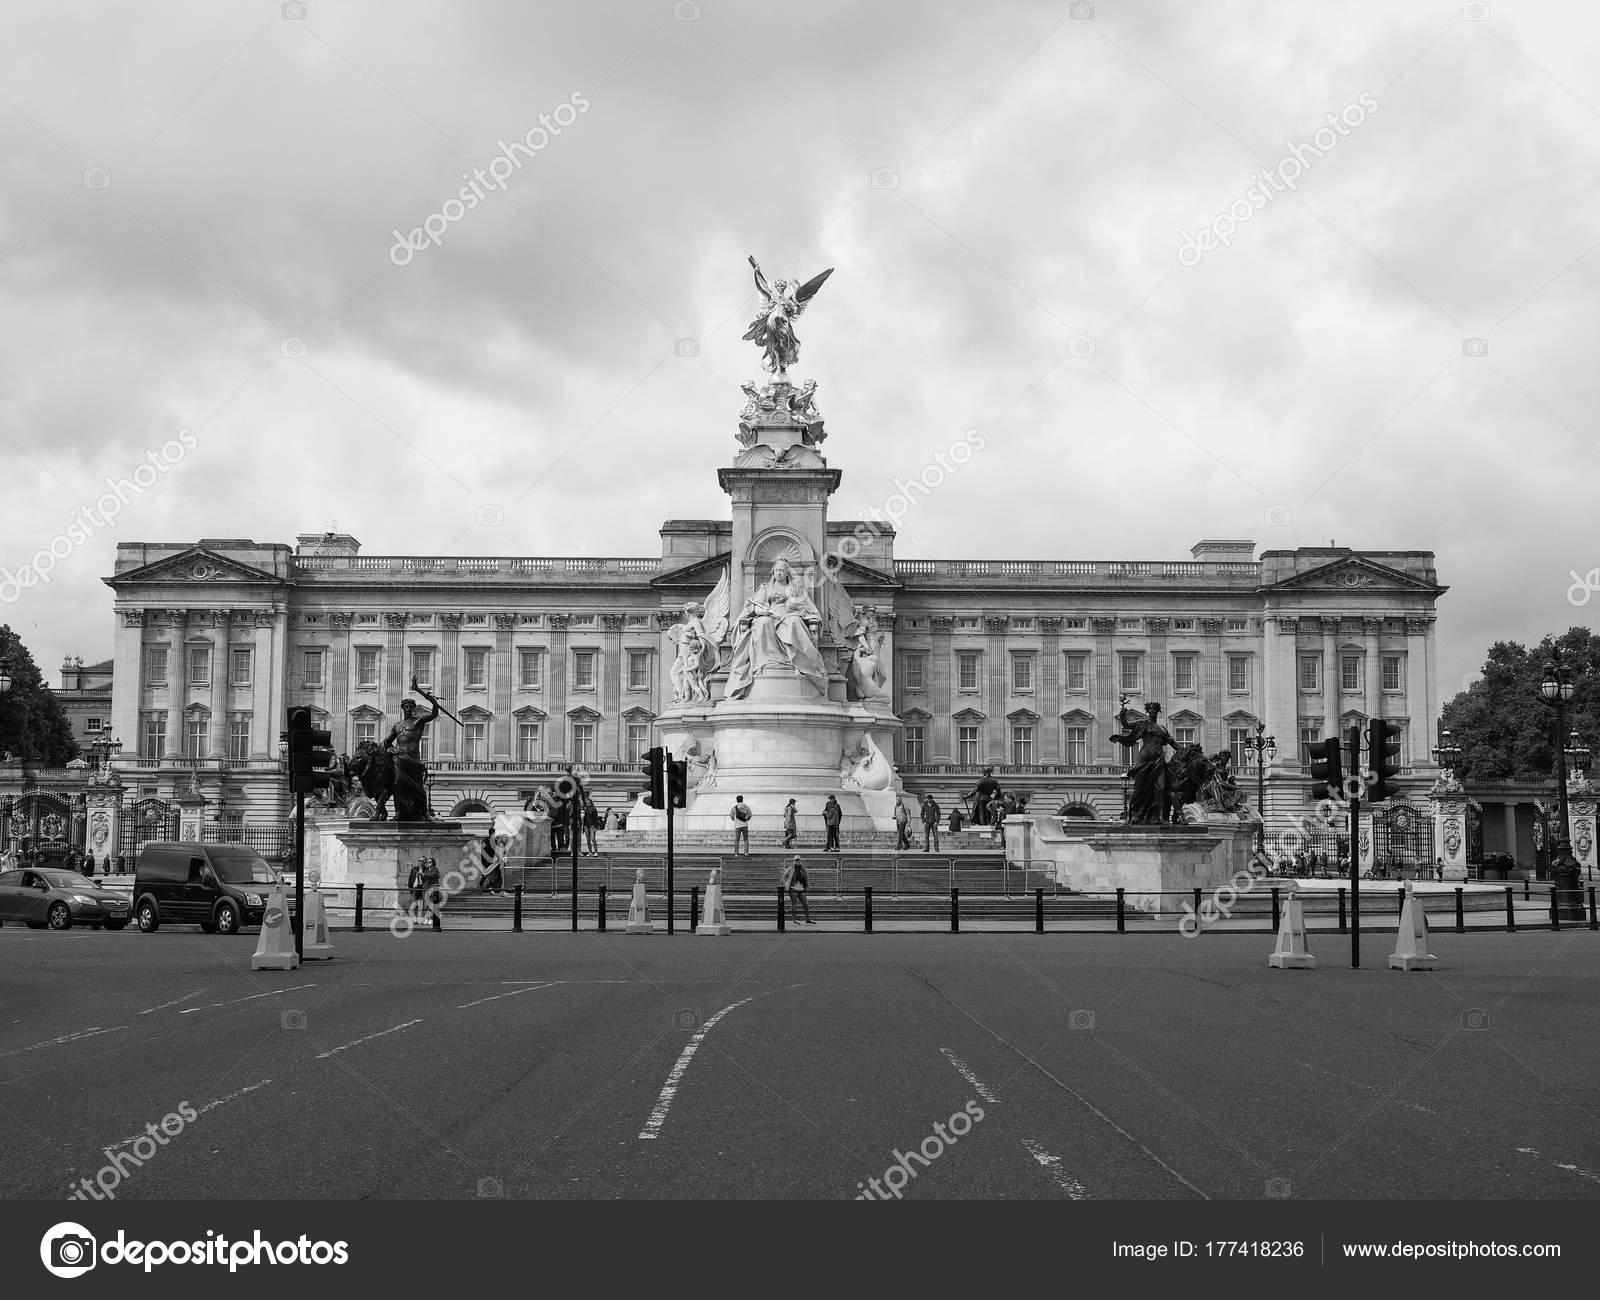 Buckingham palace in london black and white stock photo